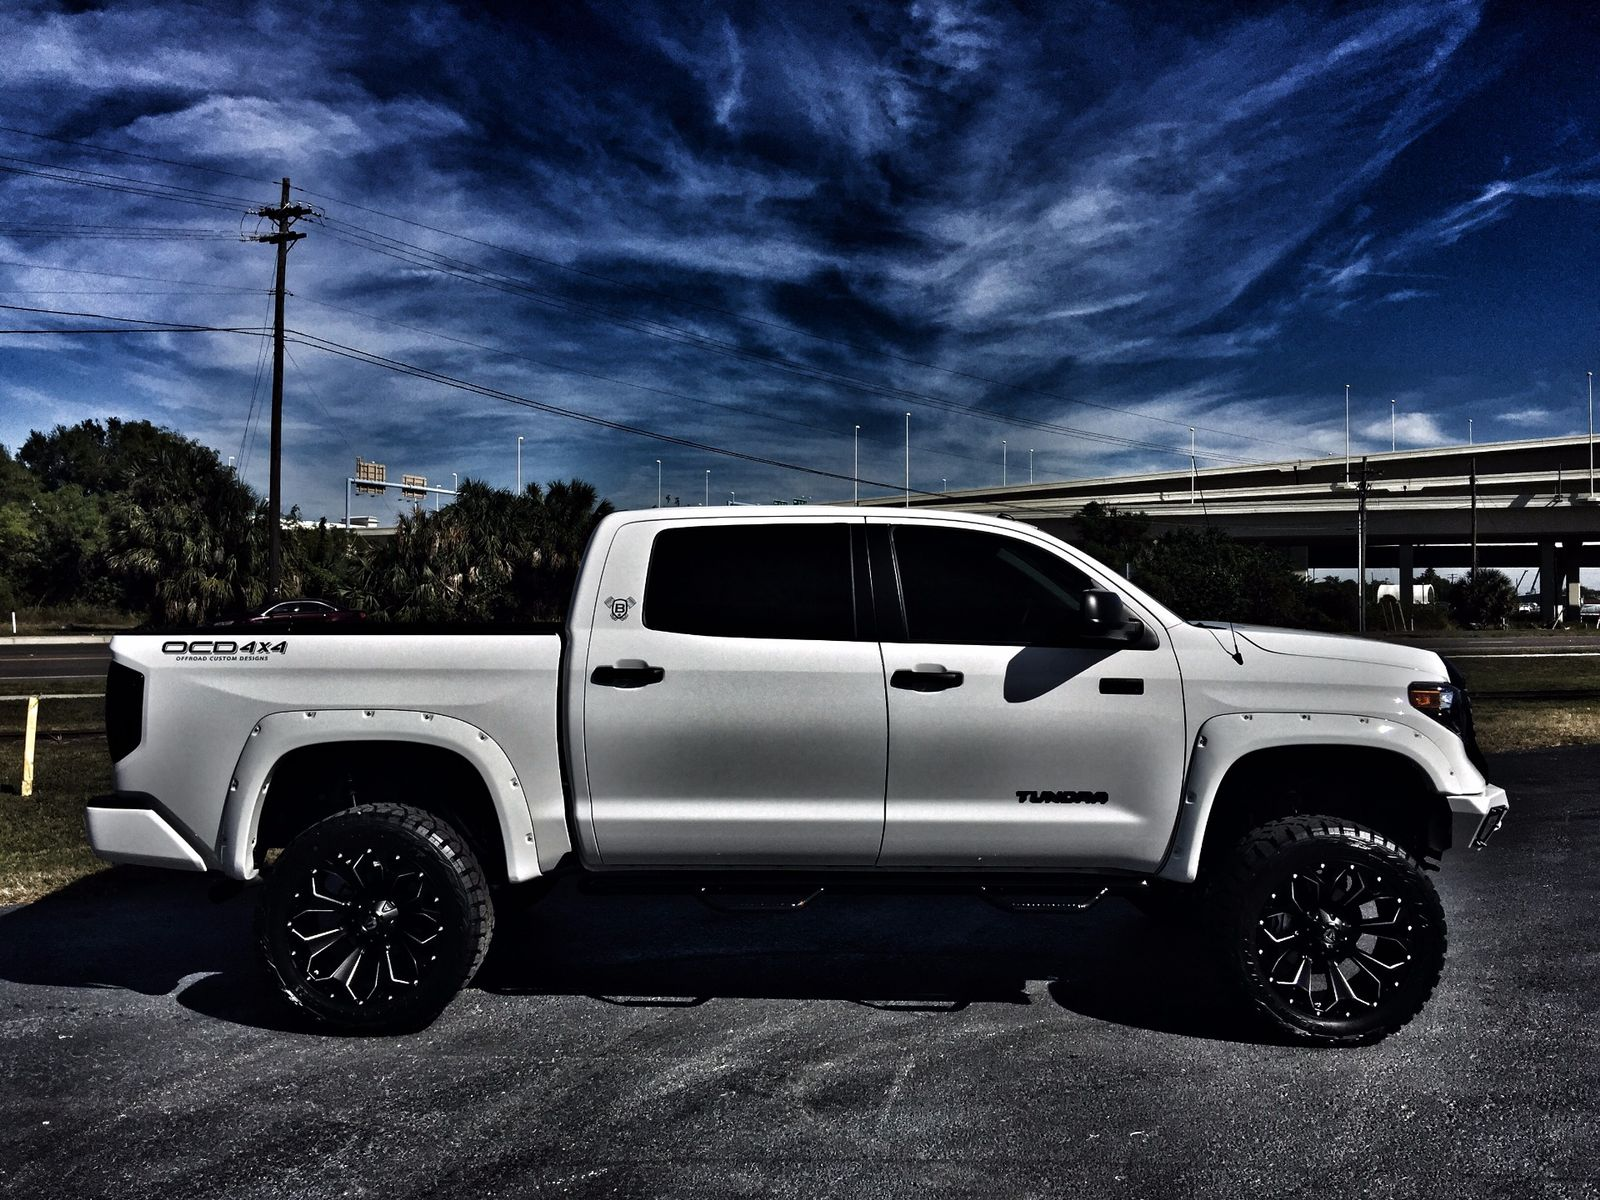 Toyota Tundra Platinum Lifted >> 2018 Toyota Tundra USTOM LIFTED CREWMAX LEATHER 4X4 V8 Florida Bayshore Automotive